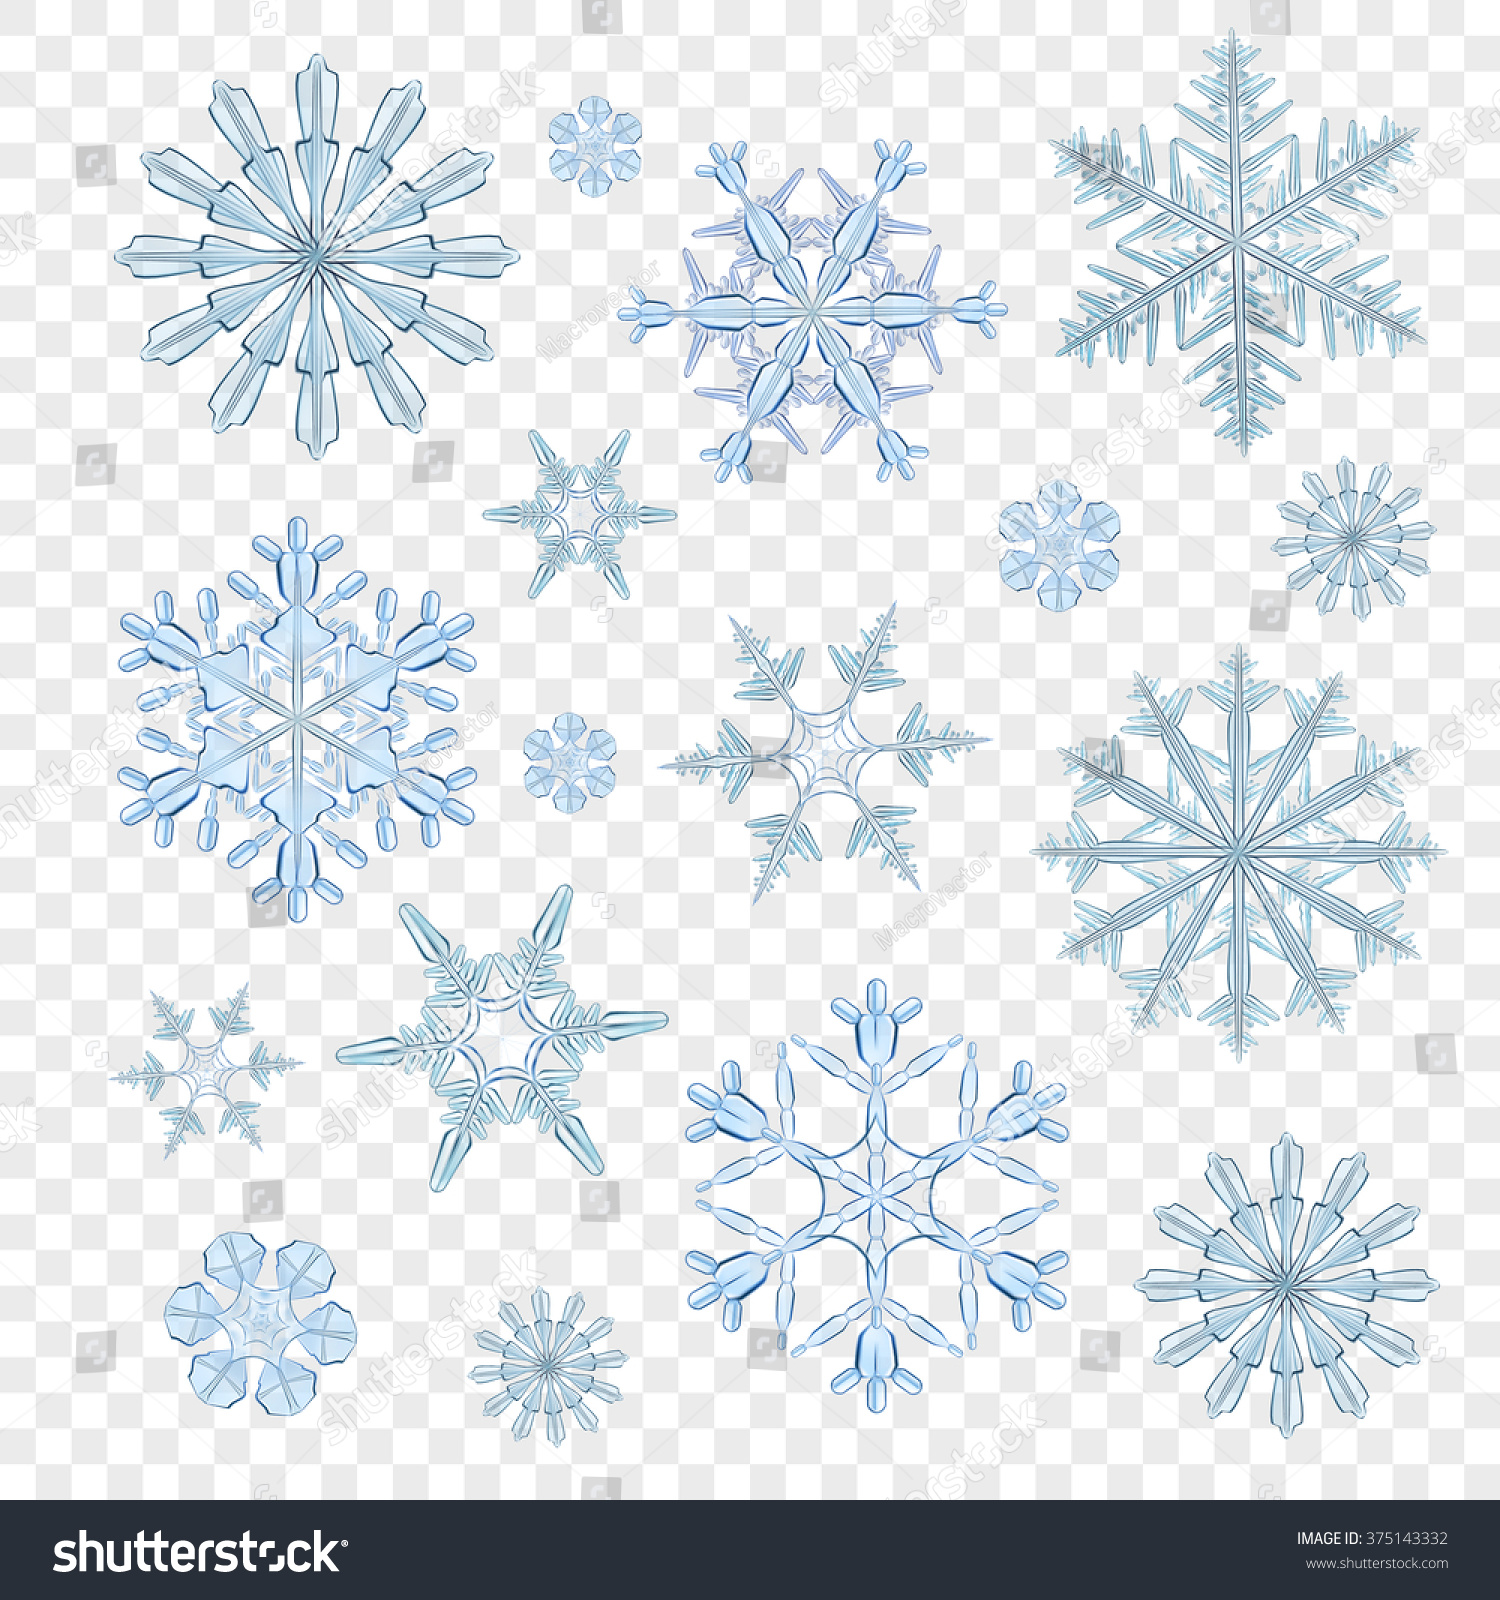 Best snowflakes vector collection isolated on